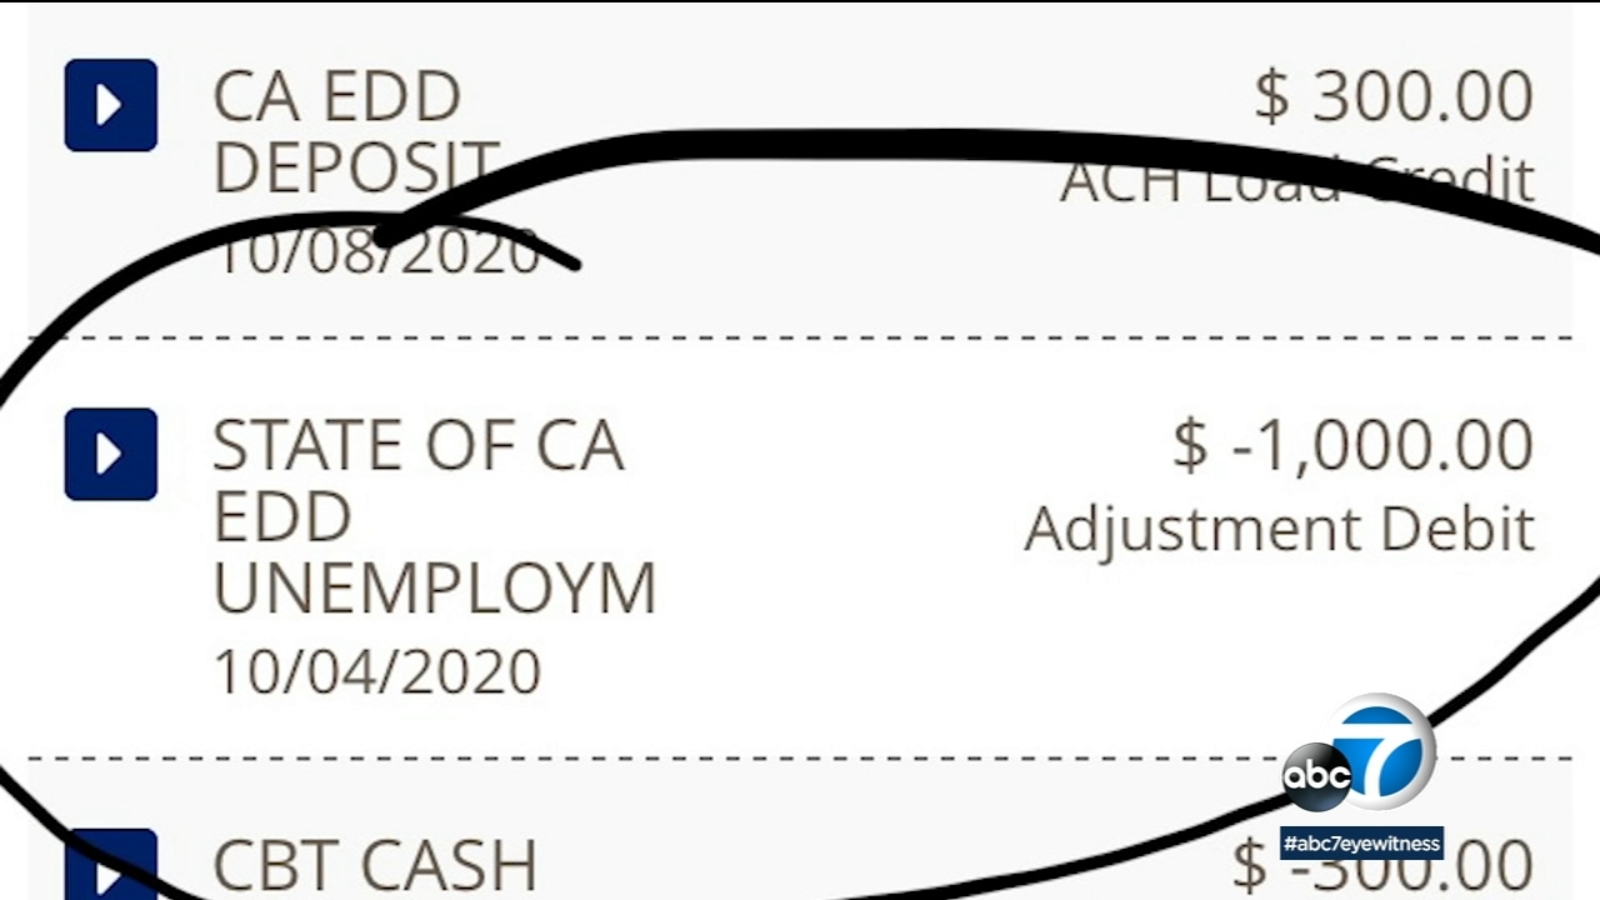 IE woman finally gets EDD funds back from BofA after 7 months